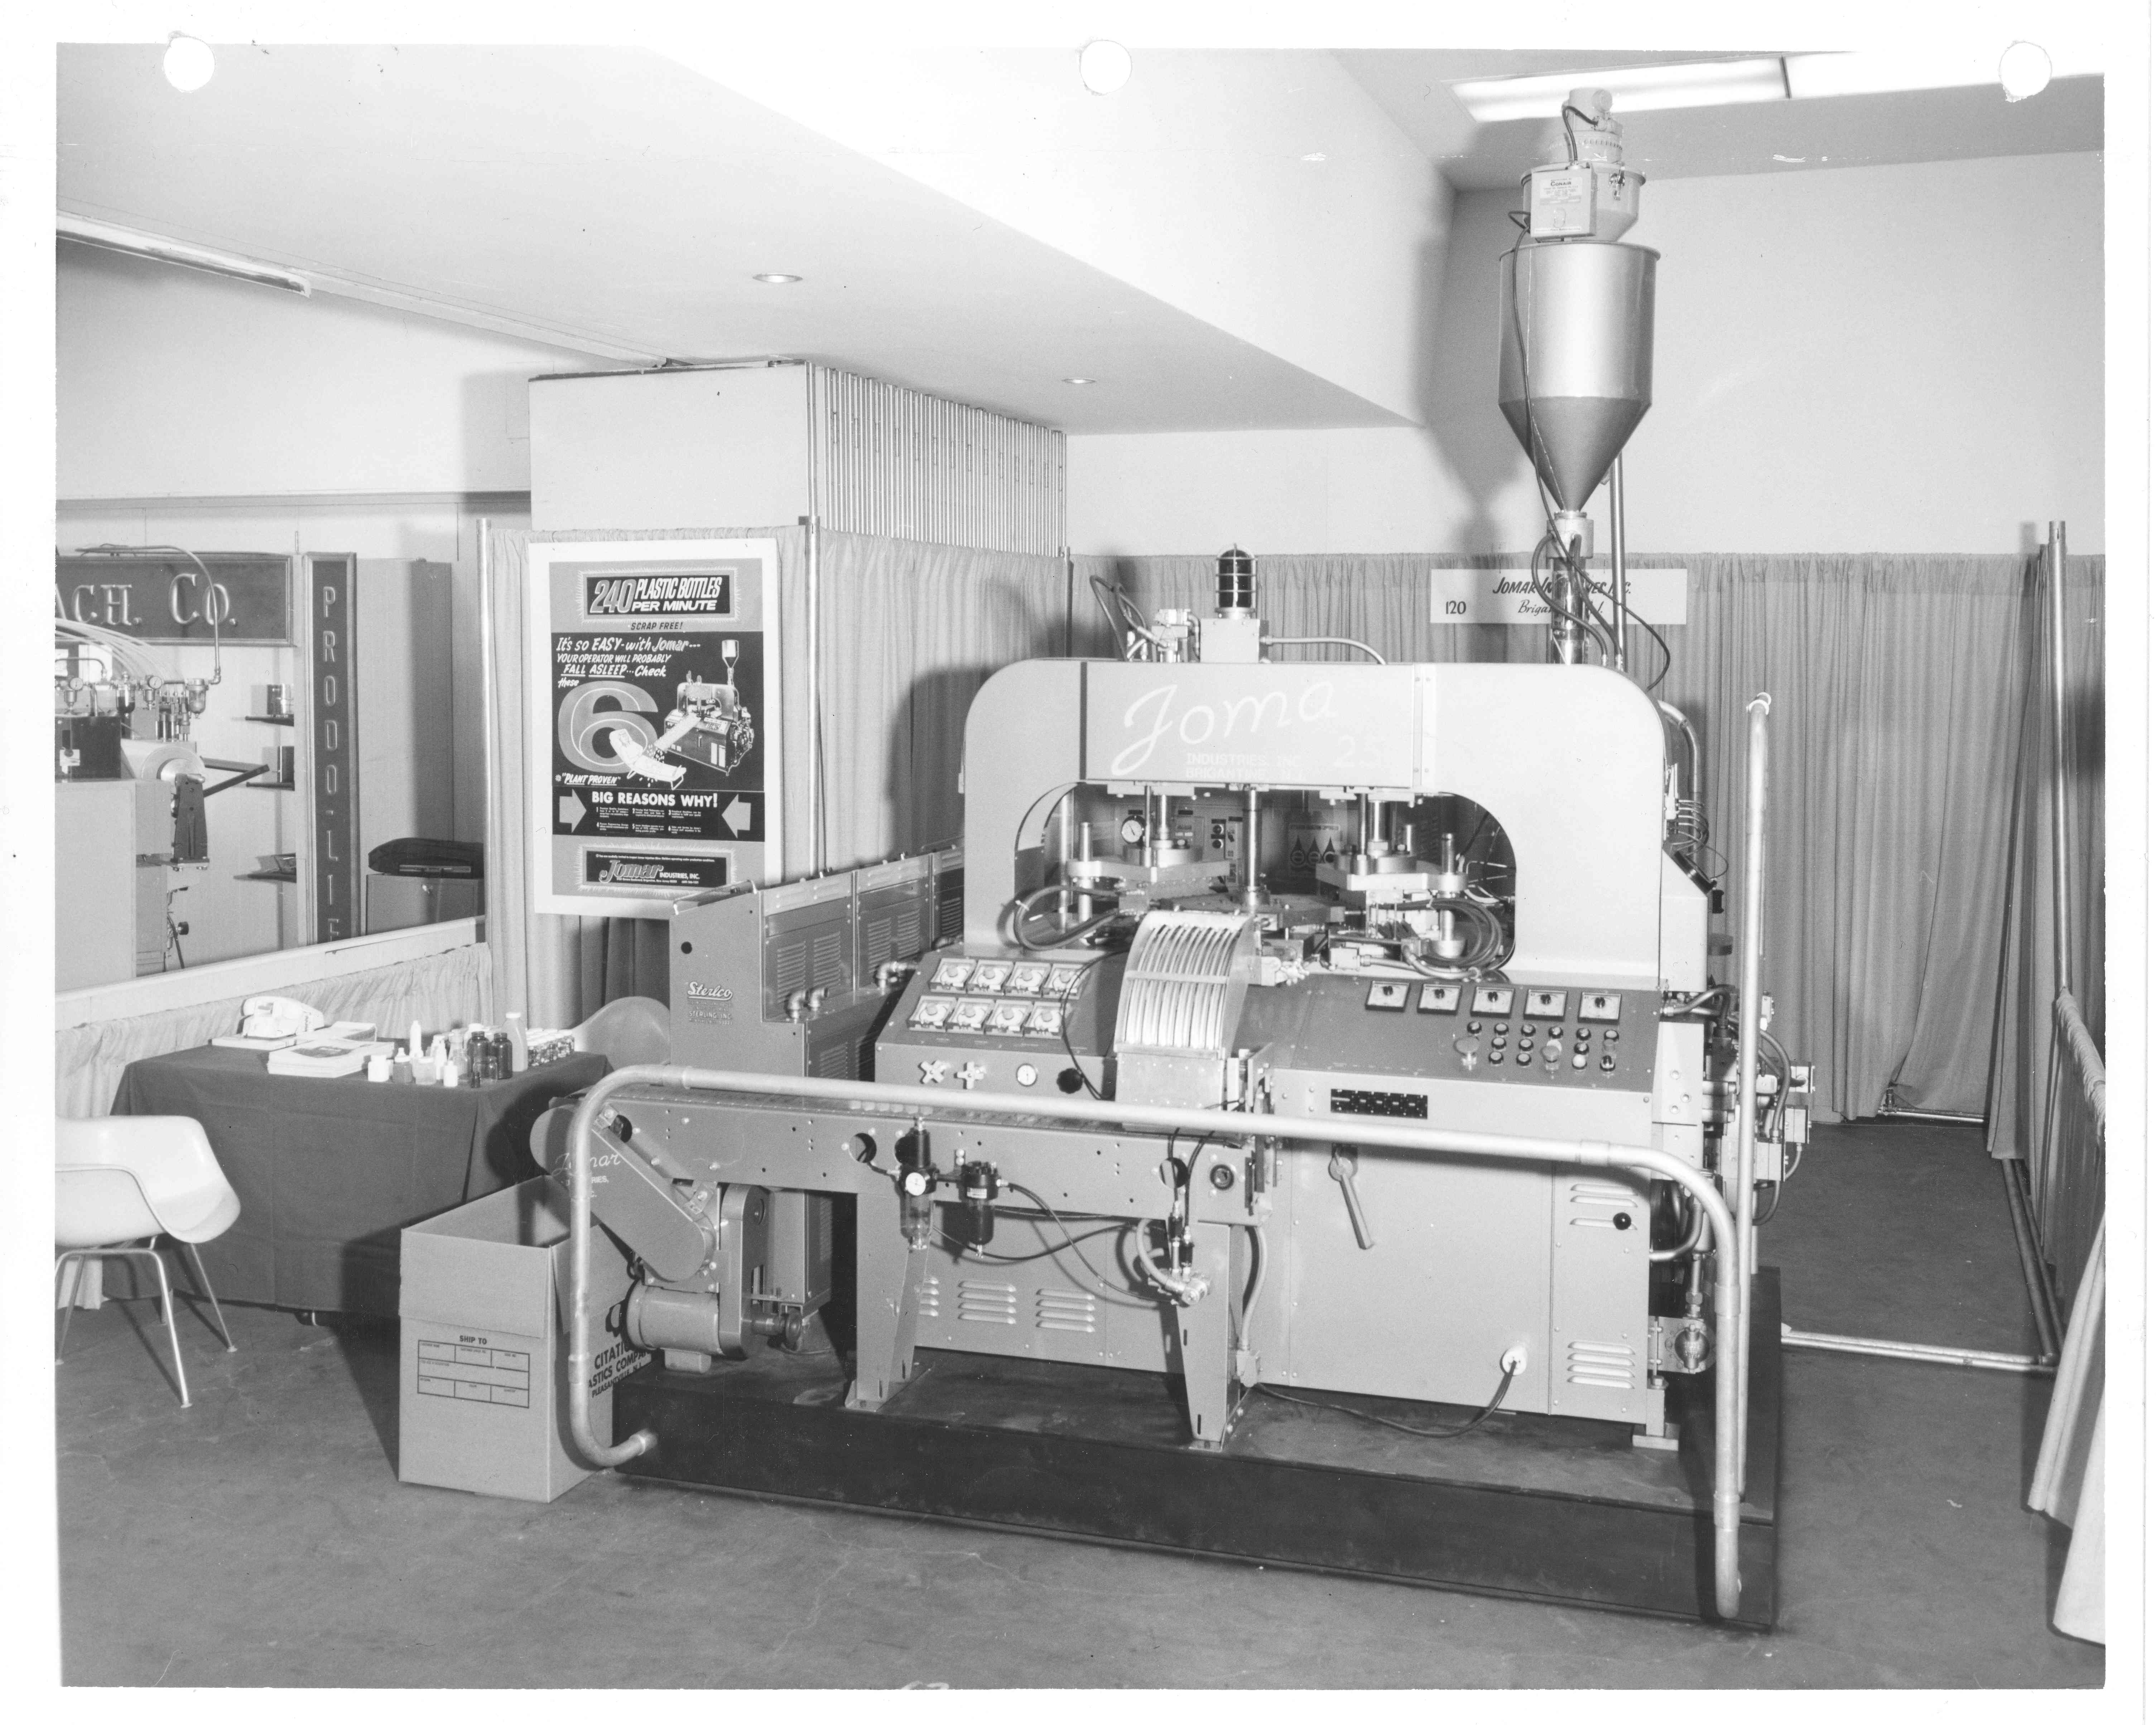 Jomar Machine at trade show in 1971